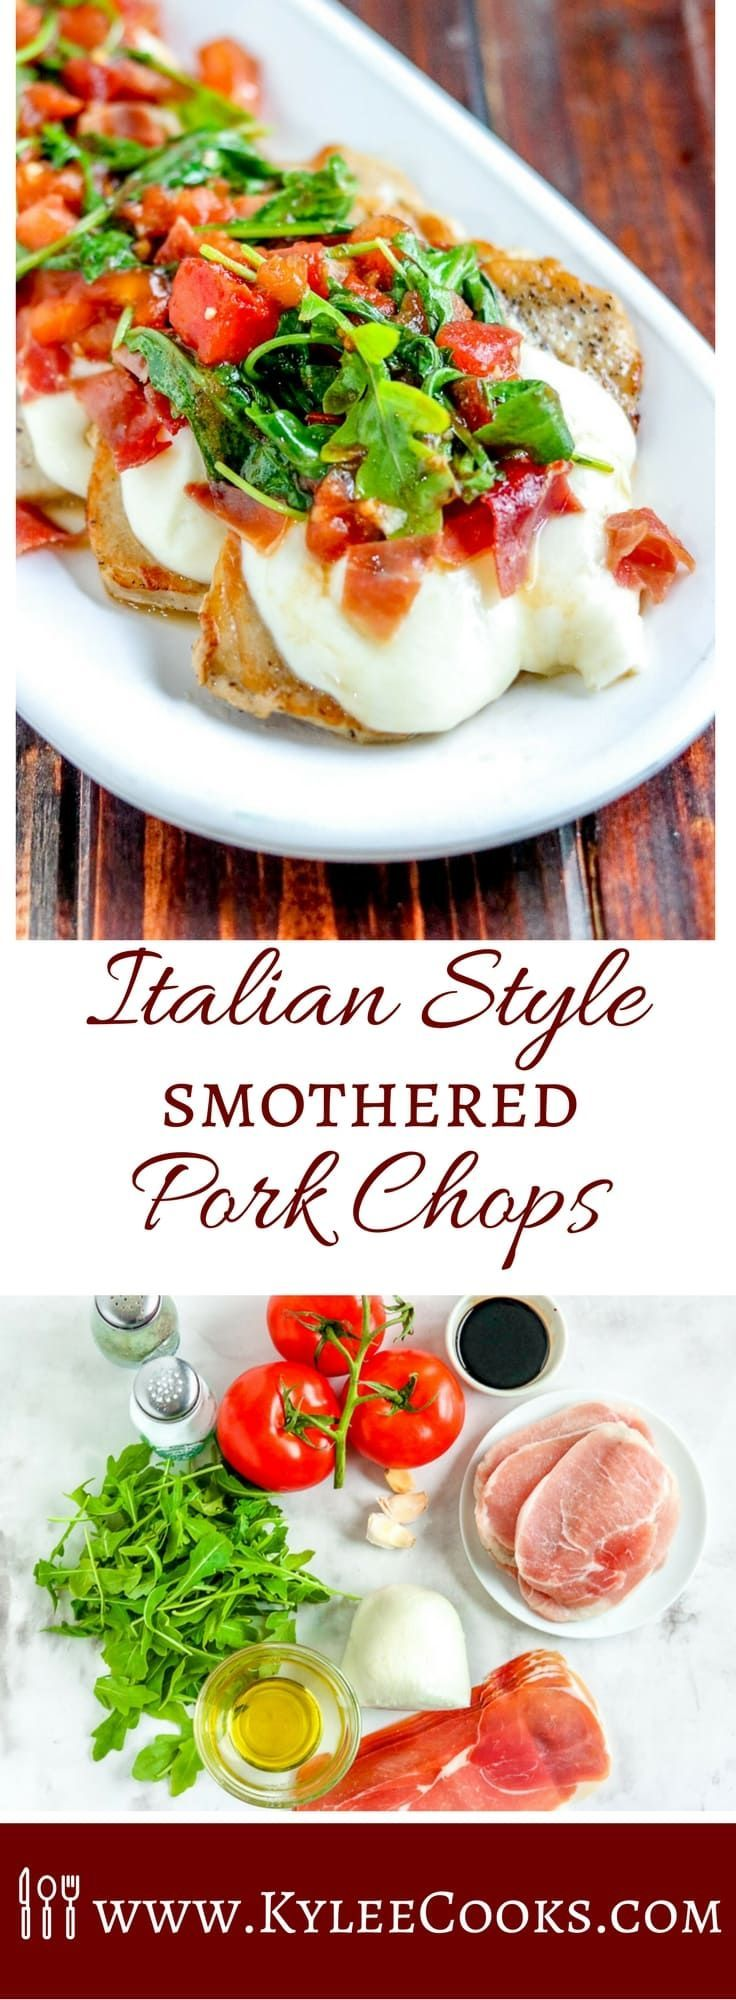 Fresh mozzarella, arugula, tomatoes and balsamic vinegar come together to amp up your weeknight pork chop dinner. Be the family hero, with these Italian Style Smothered Pork Chops!